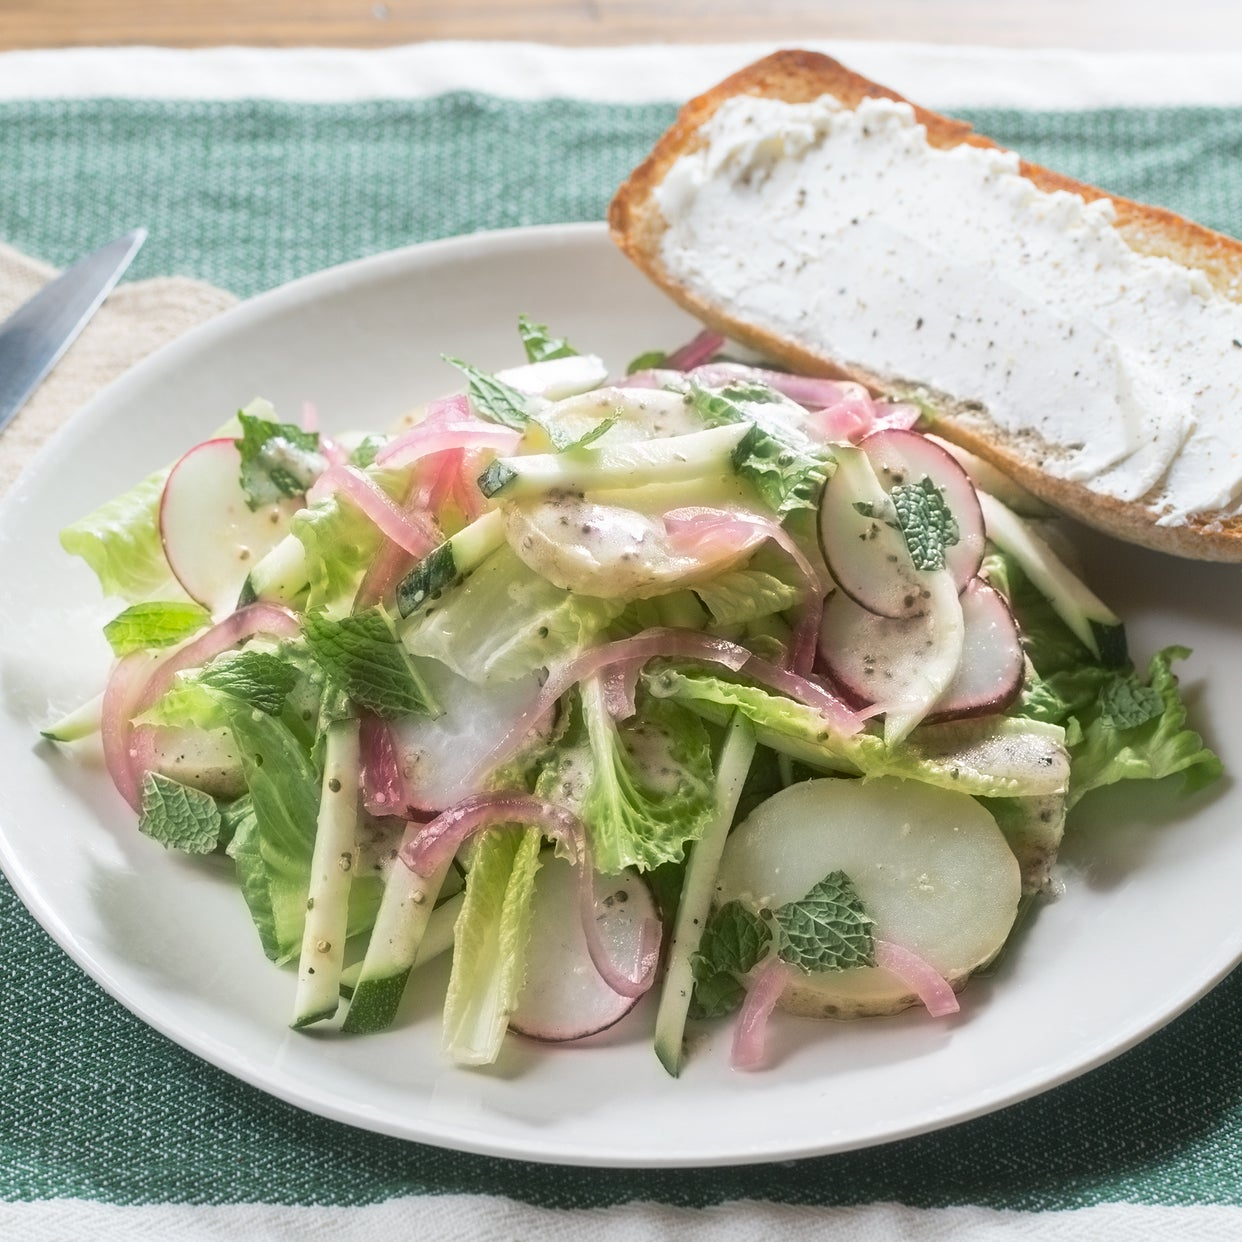 Romaine, Potato & Zucchini Salad with Buttermilk Dressing & Goat Cheese Toasts